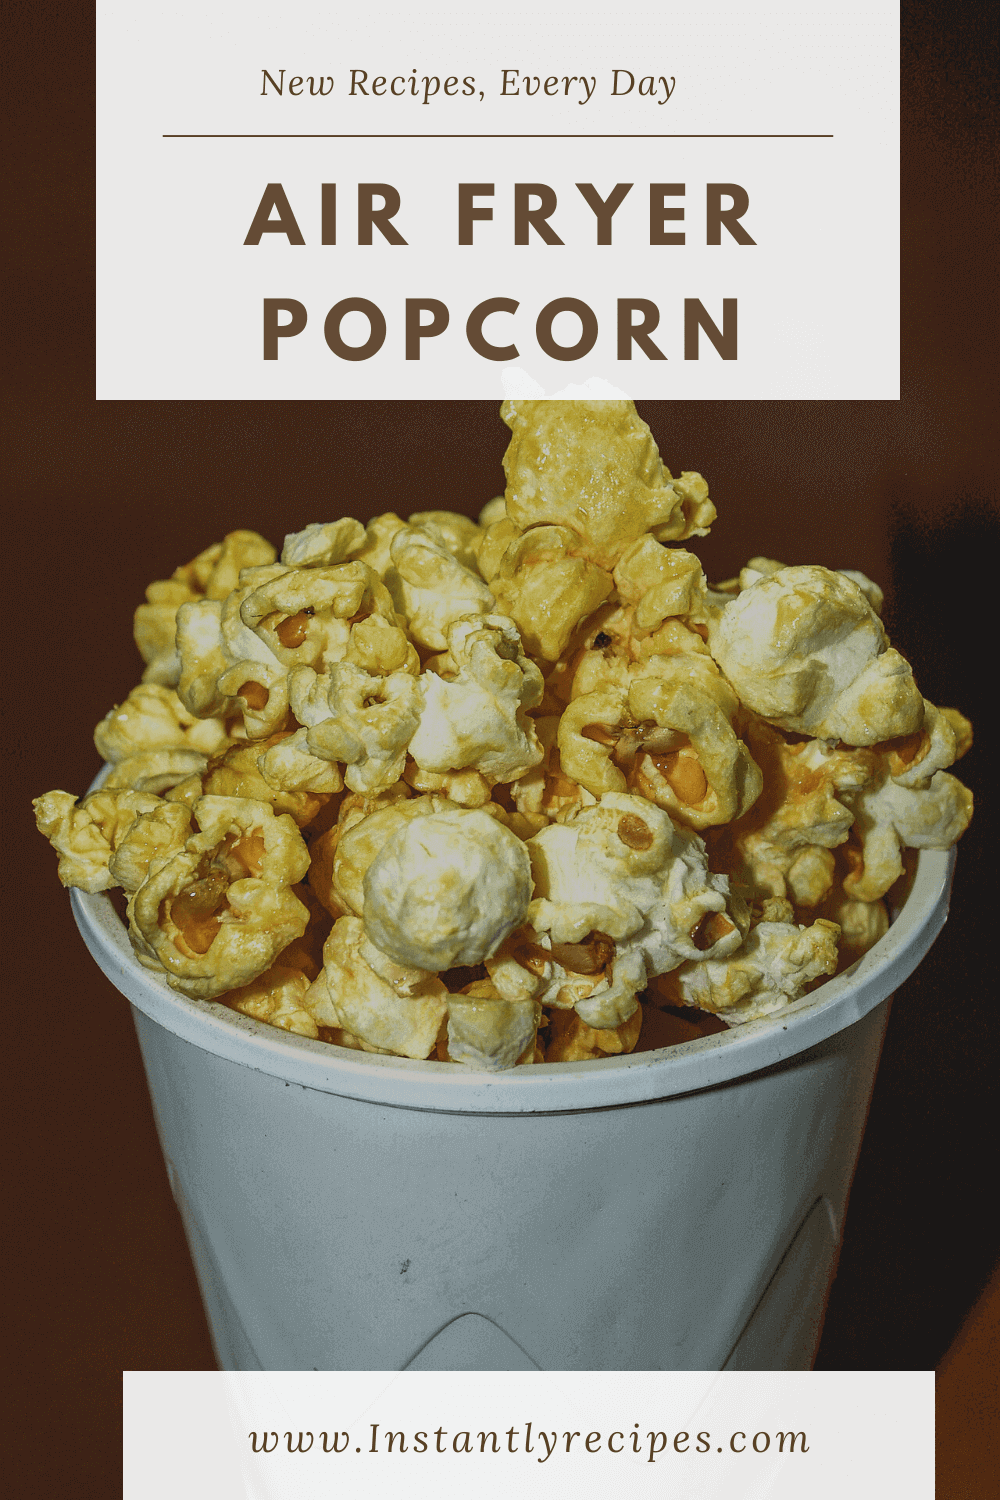 Air fryer popcorn Recipe in 2020 Recipes, Popcorn